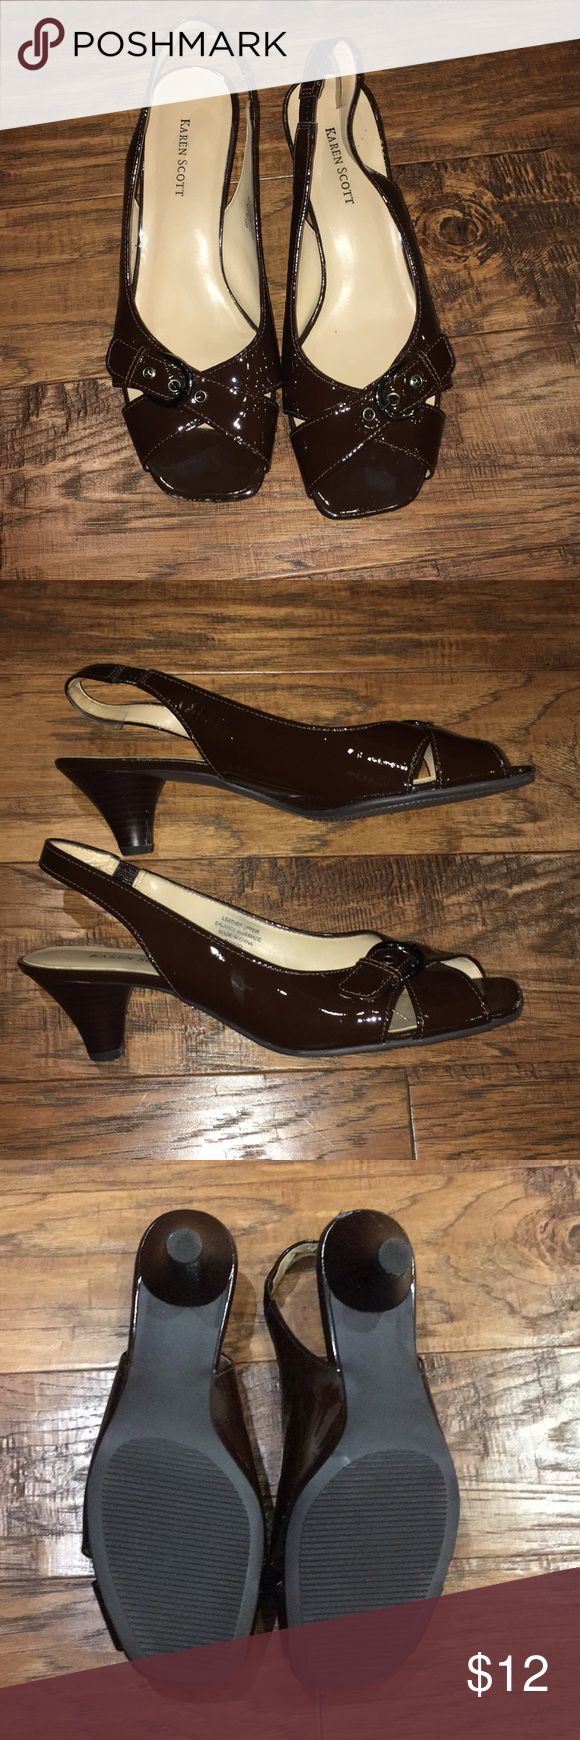 Women's sling back heels Women's size 10 chocolate colored sling back low heels.  Worn once.  Great condition.  Small amount of scuffing on one toe.  Would not be noticeable when shoe is on foot.  Great for a bridesmaids/formal attire! Karen Scott Shoes Heels